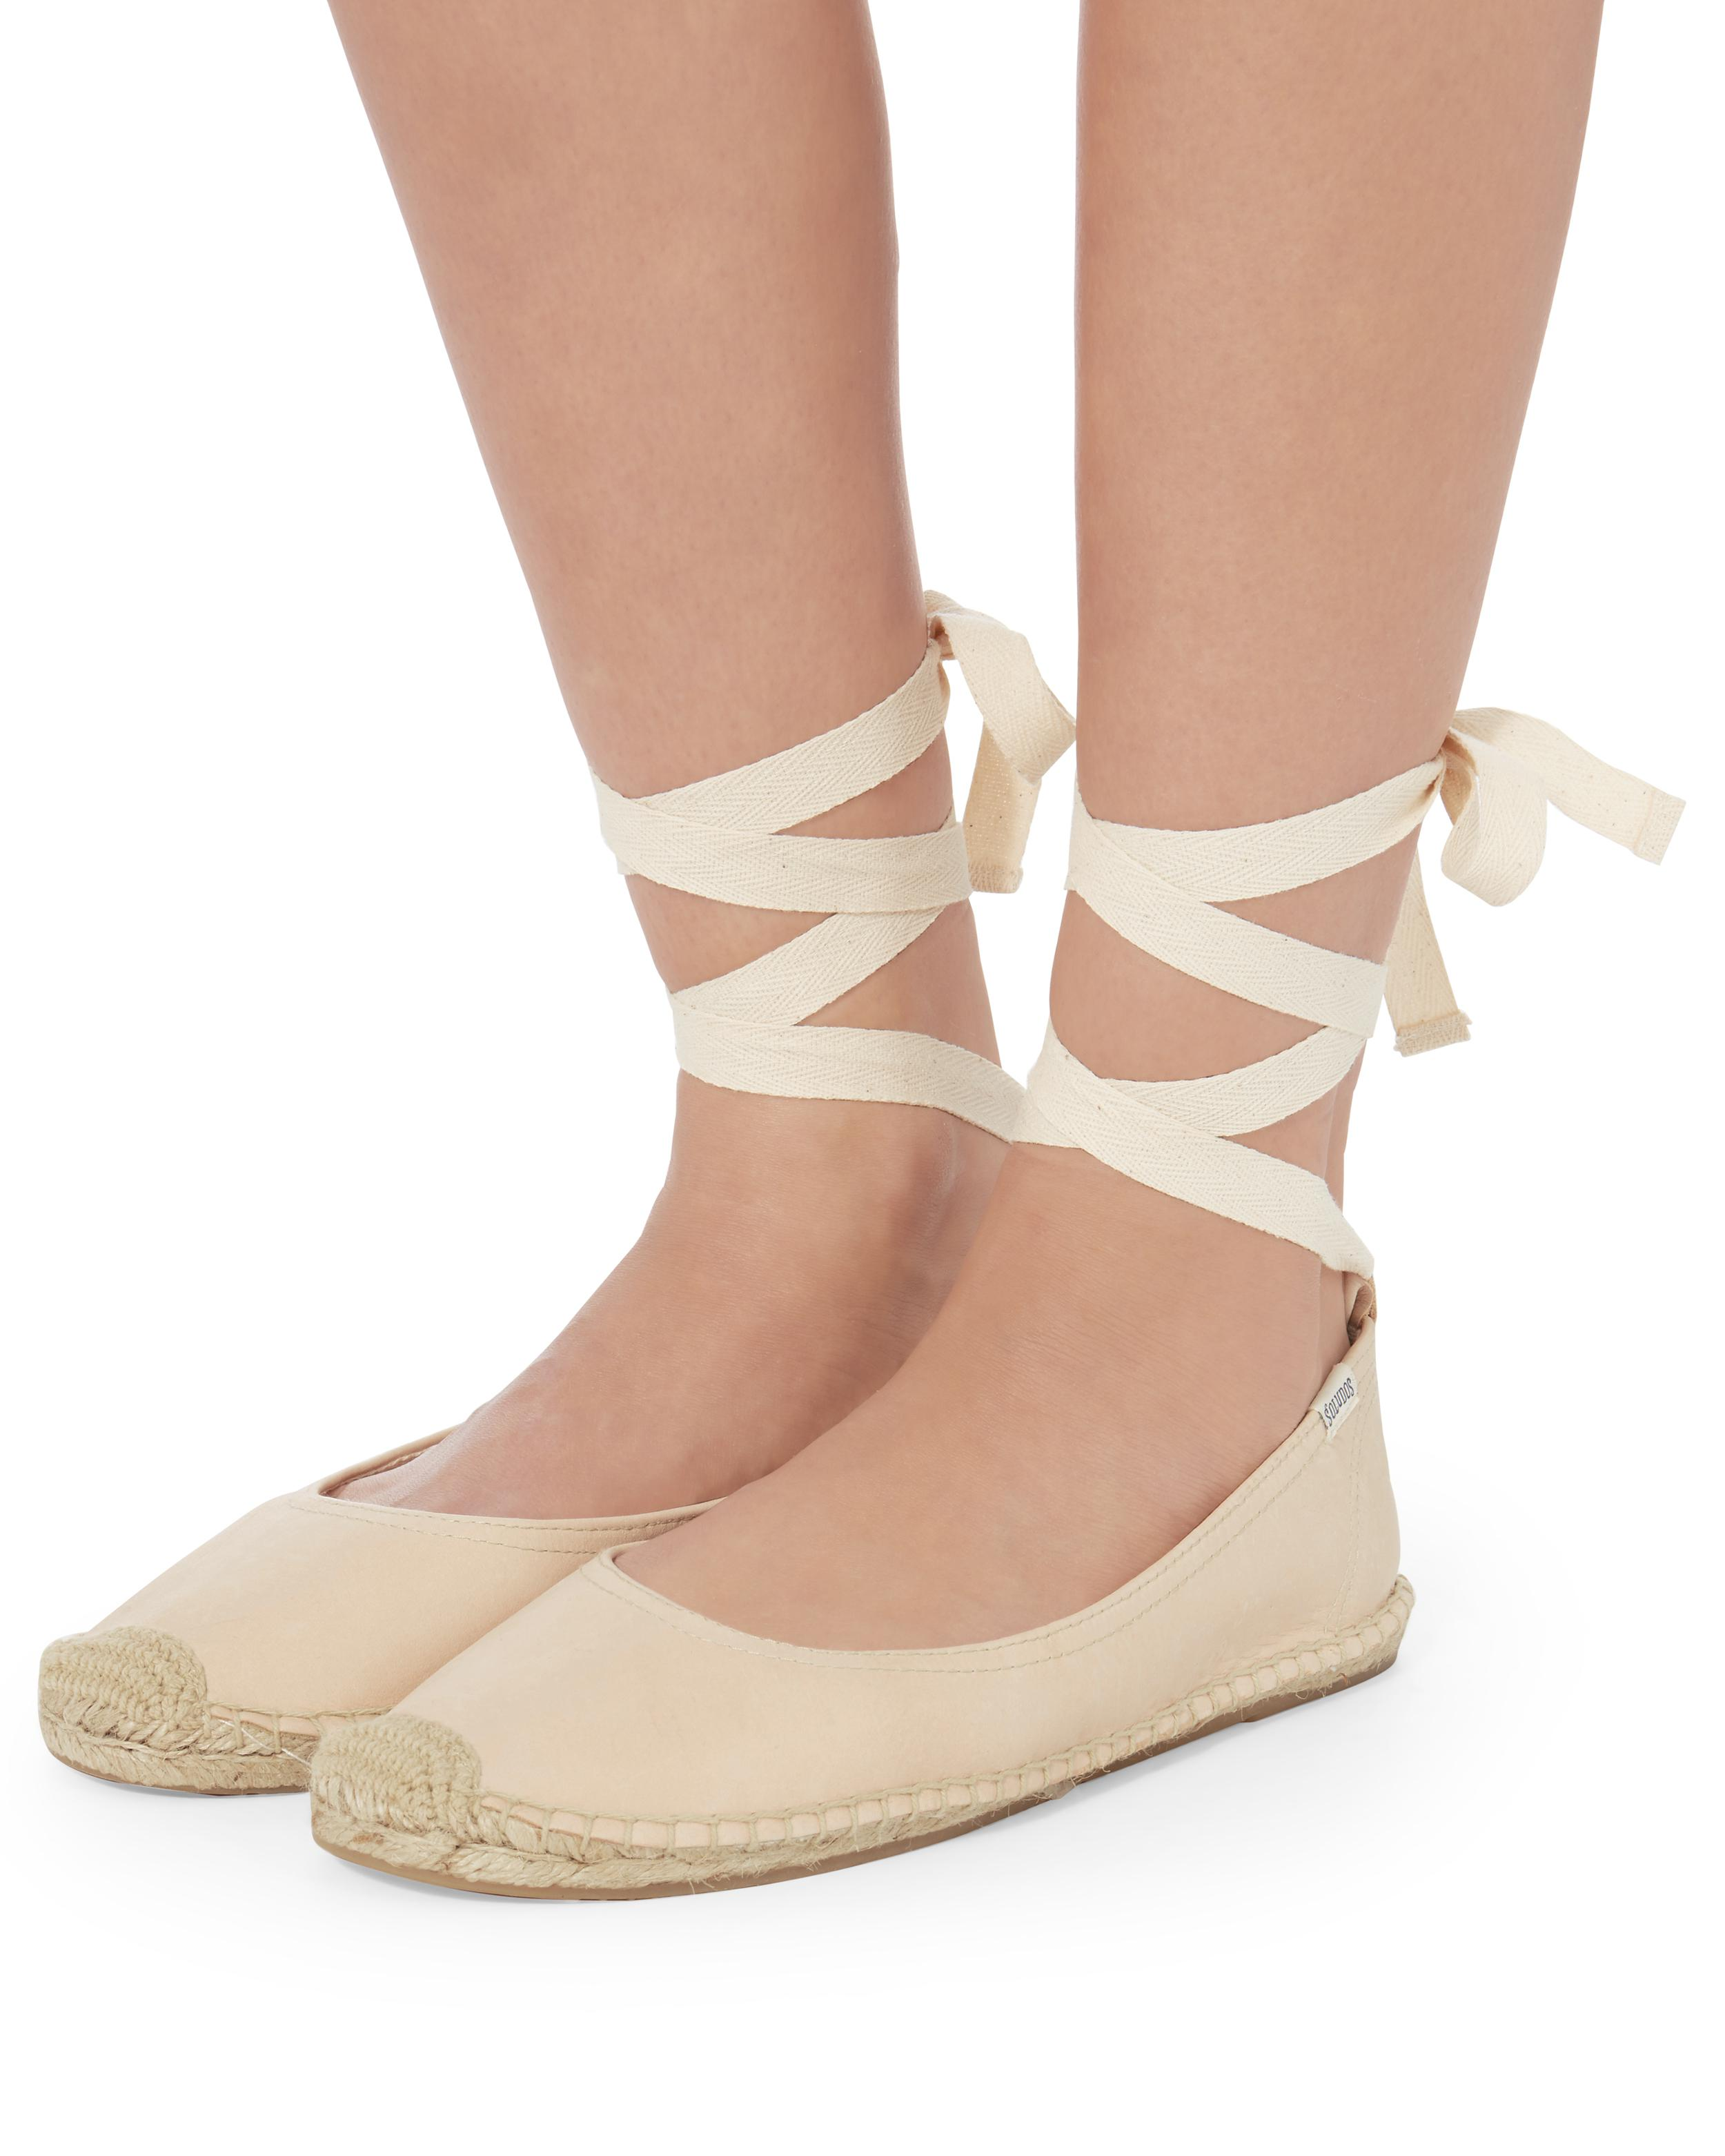 Soludos Ballet Tie-Up Flat